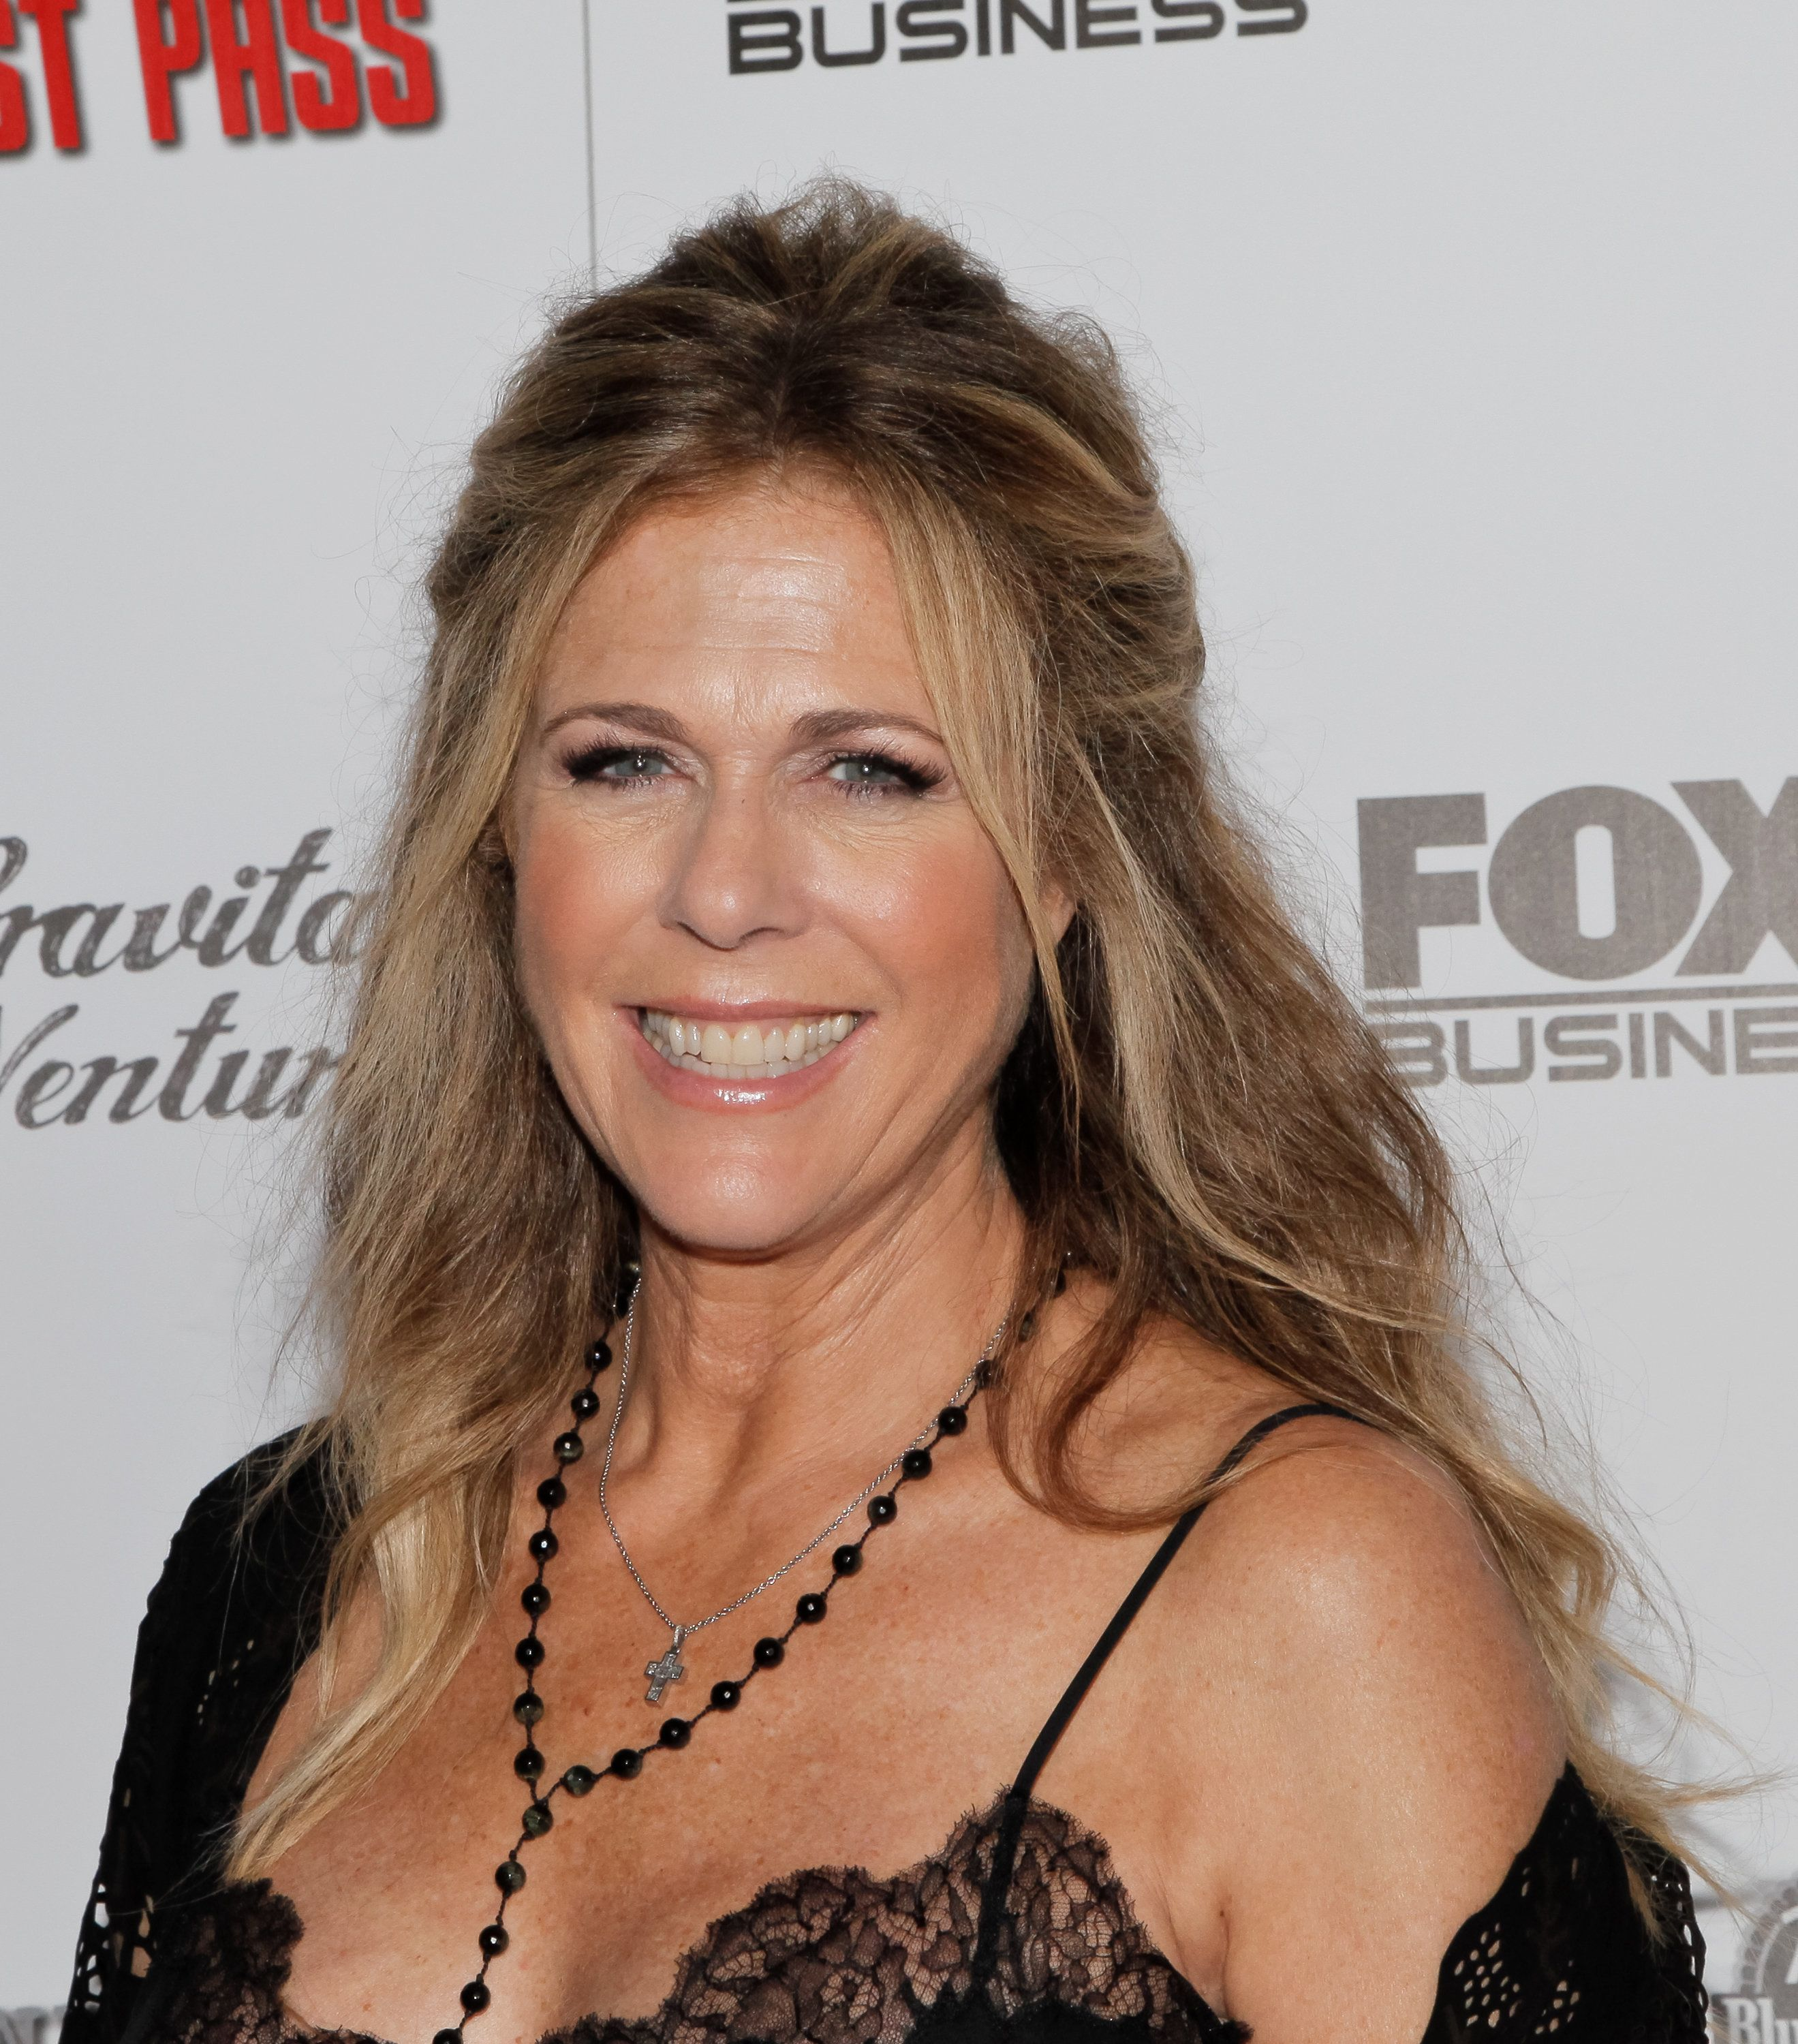 LOS ANGELES, CA - OCTOBER 15:  Rita Wilson attends the premiere of 'All Things Must Pass' at Harmony Gold Theatre on October 15, 2015 in Los Angeles, California.  (Photo by Tibrina Hobson/FilmMagic)